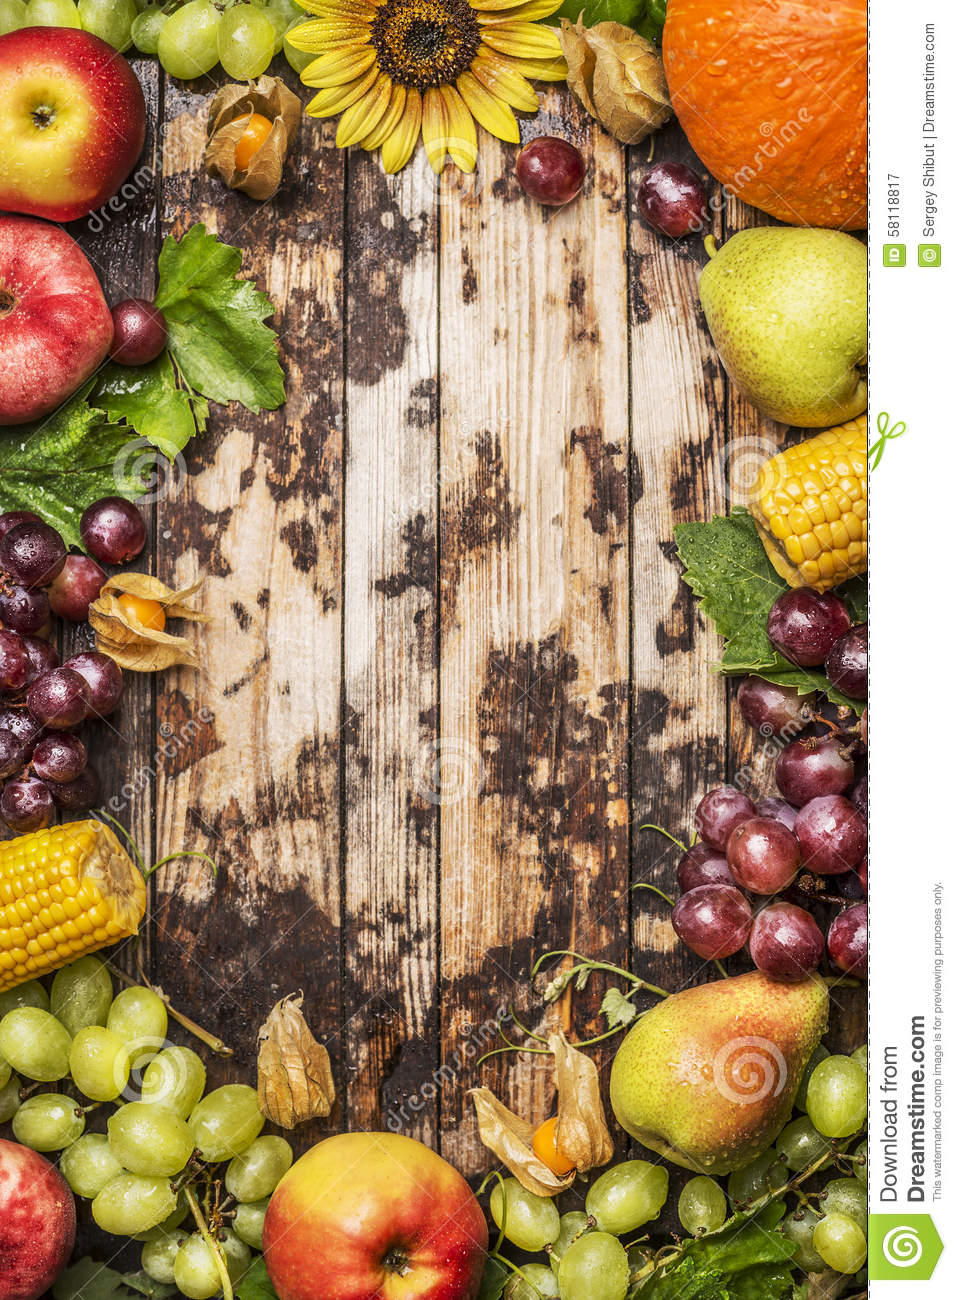 Harvest Fruits Berries And Vegetables With Sunflower On A